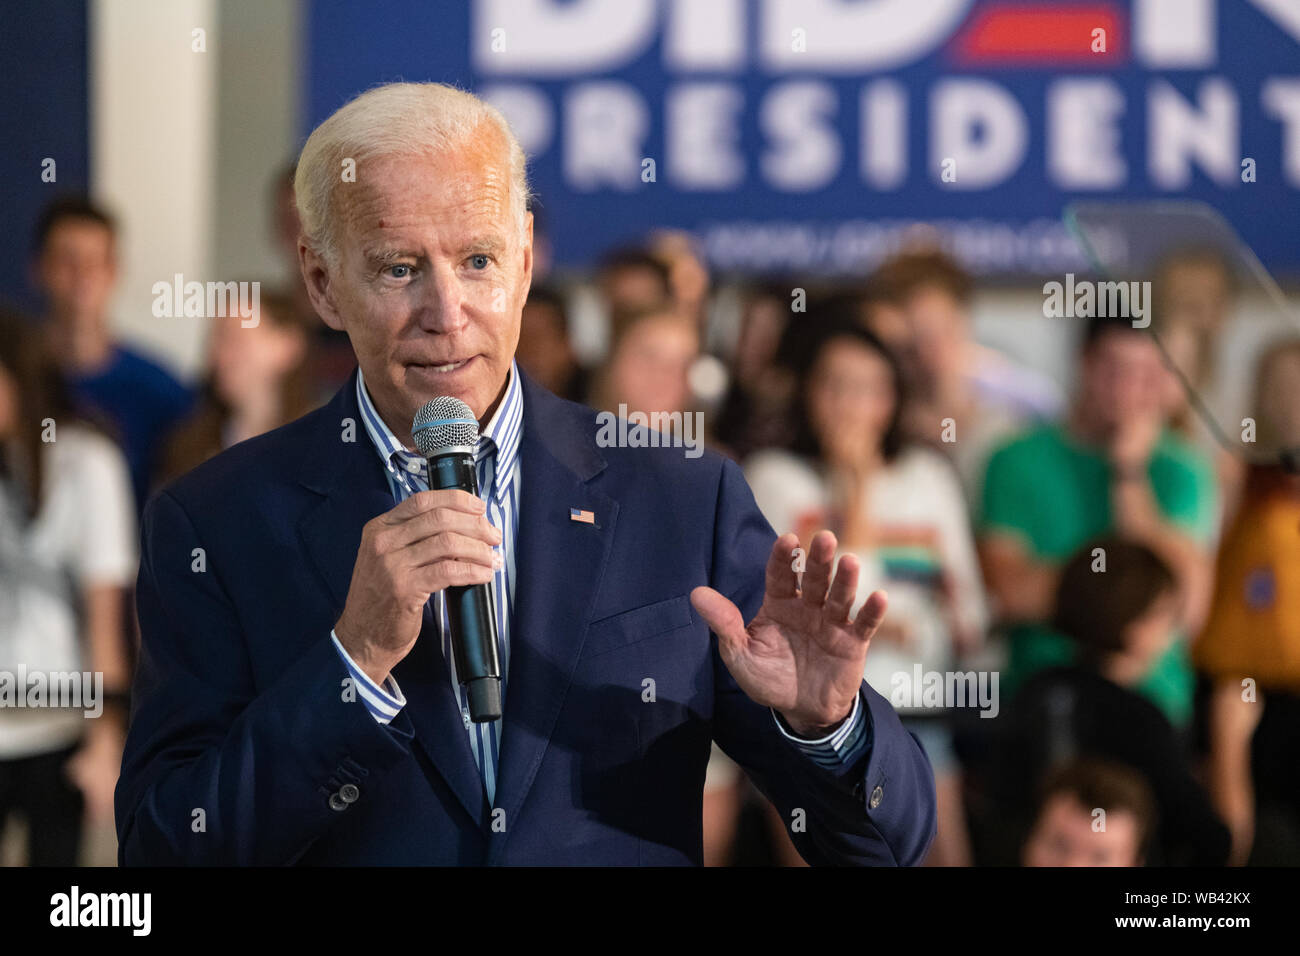 New Hampshire, USA. August 23, 2019, Darthmouth College, Hanover, New Hampshire, USA: Democratic presidential candidate former Vice President Joe Biden campaigning at Dartmouth College. Credit: Keiko Hiromi/AFLO/Alamy Live News Stock Photo